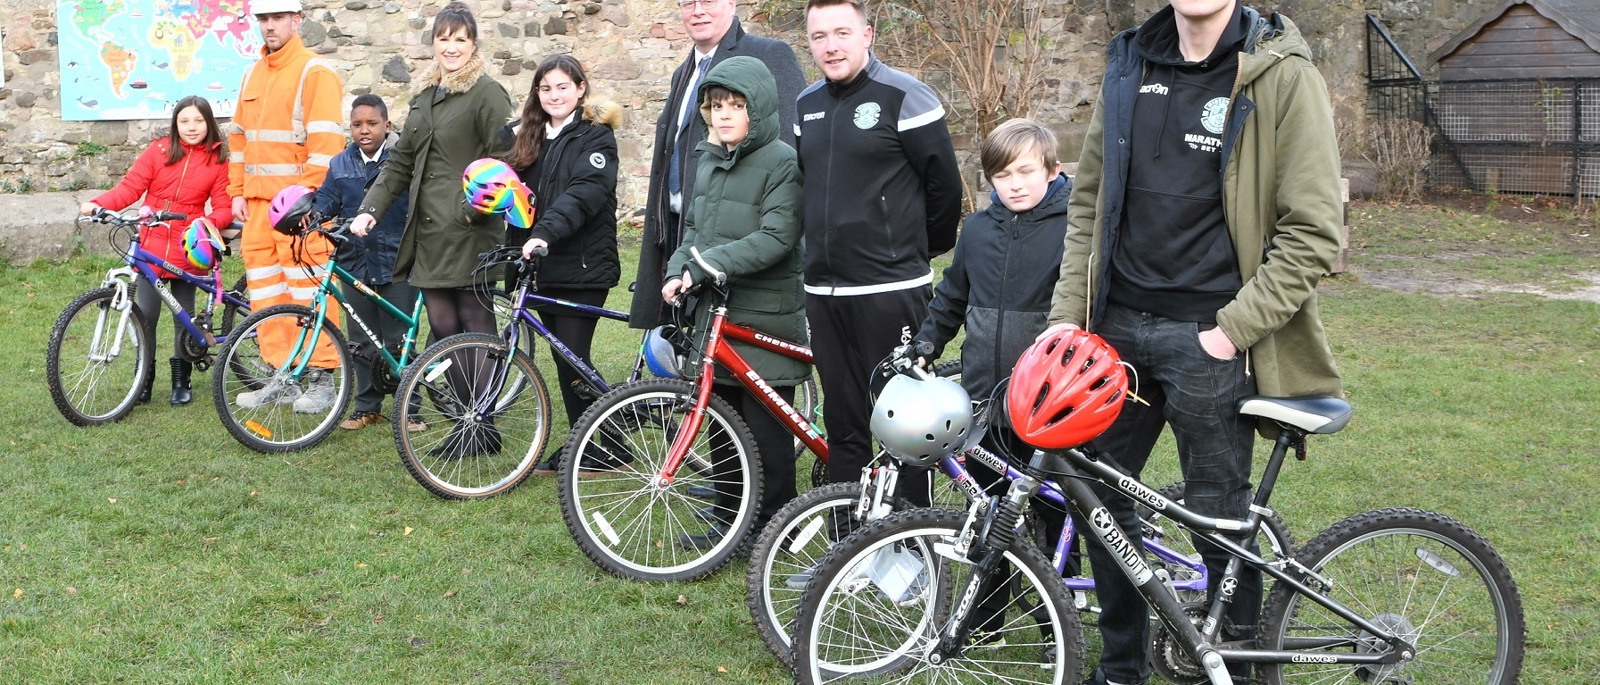 'Edinburgh Cheer' to local school with donation of children's bikes